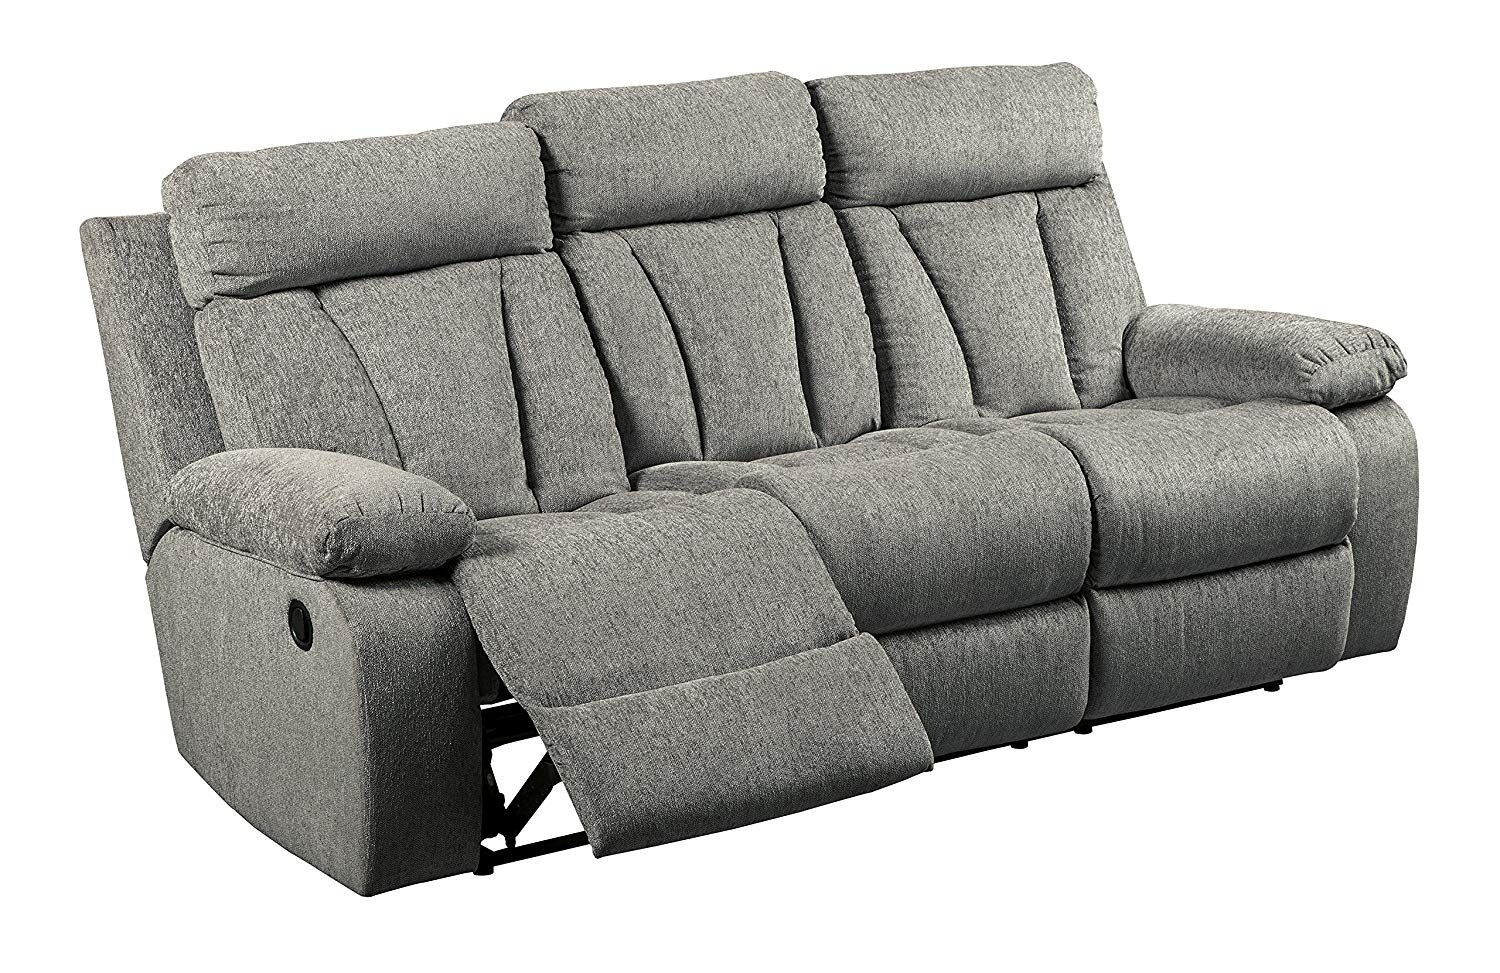 Signature Design By Ashley 7620489 Mitchiner Reclining Sofa With Drop Down Table Fog Hope You Reclining Sofa Ashley Furniture Living Room Deep Seated Couch